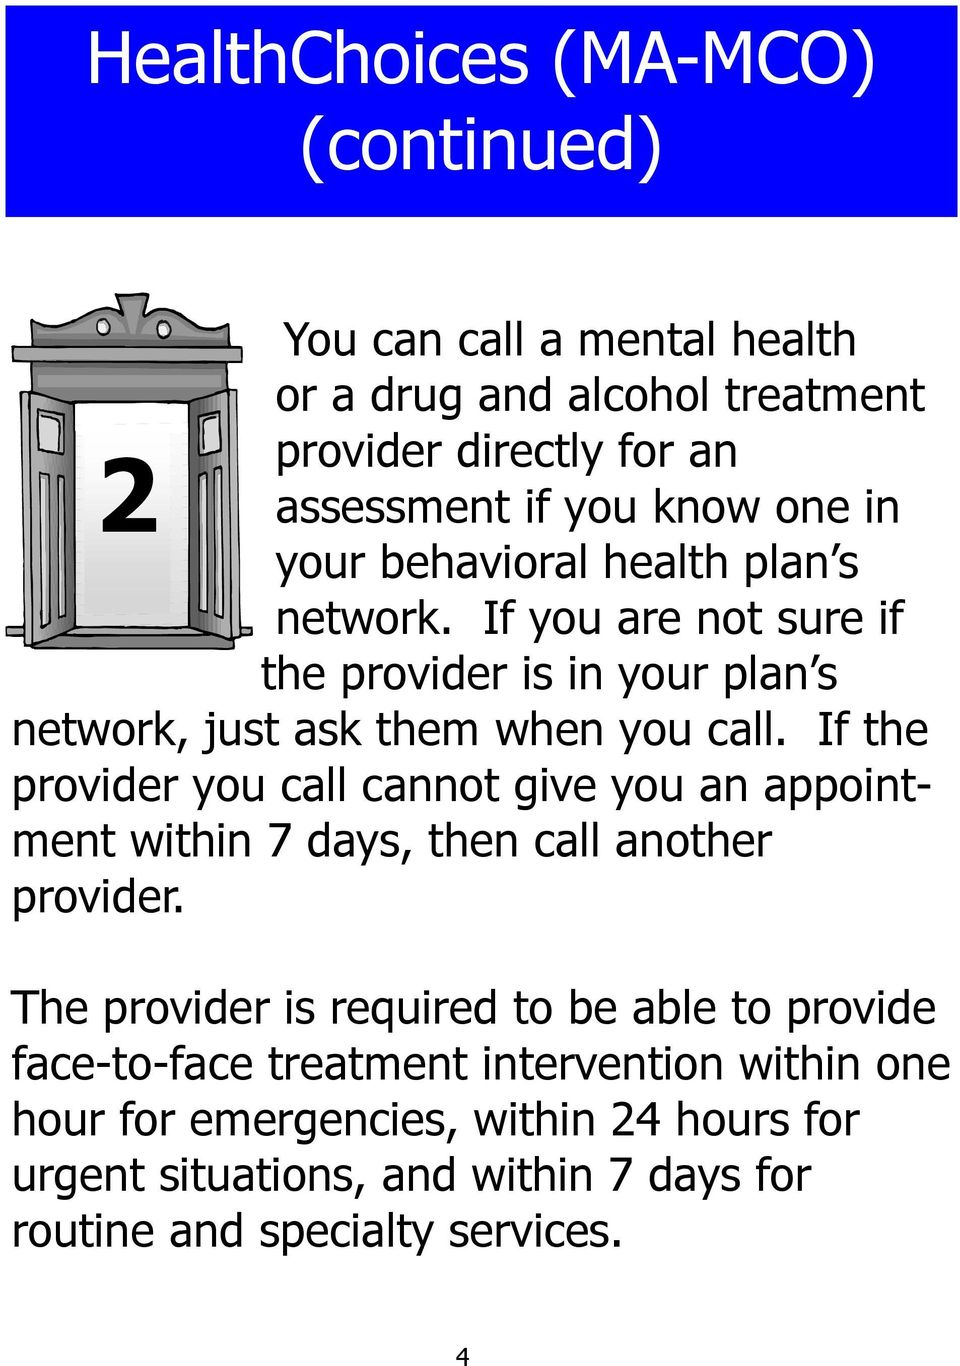 If the provider you call cannot give you an appointment within 7 days, then call another provider.